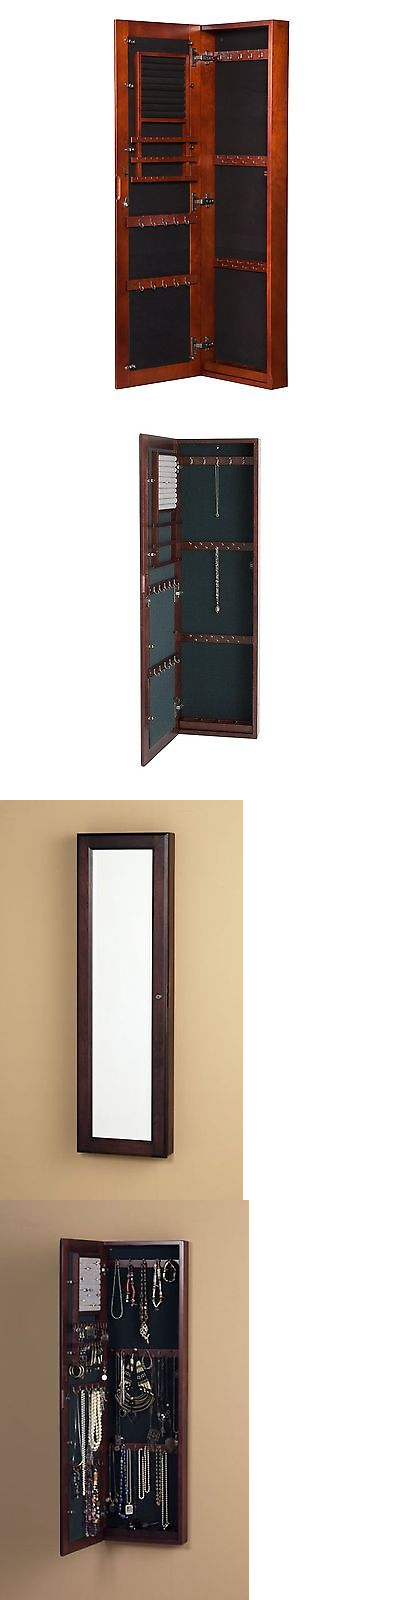 Multi-Purpose 168165: Wall Mount Jewelry Mirror - Cherry New BUY IT NOW ONLY: $152.79